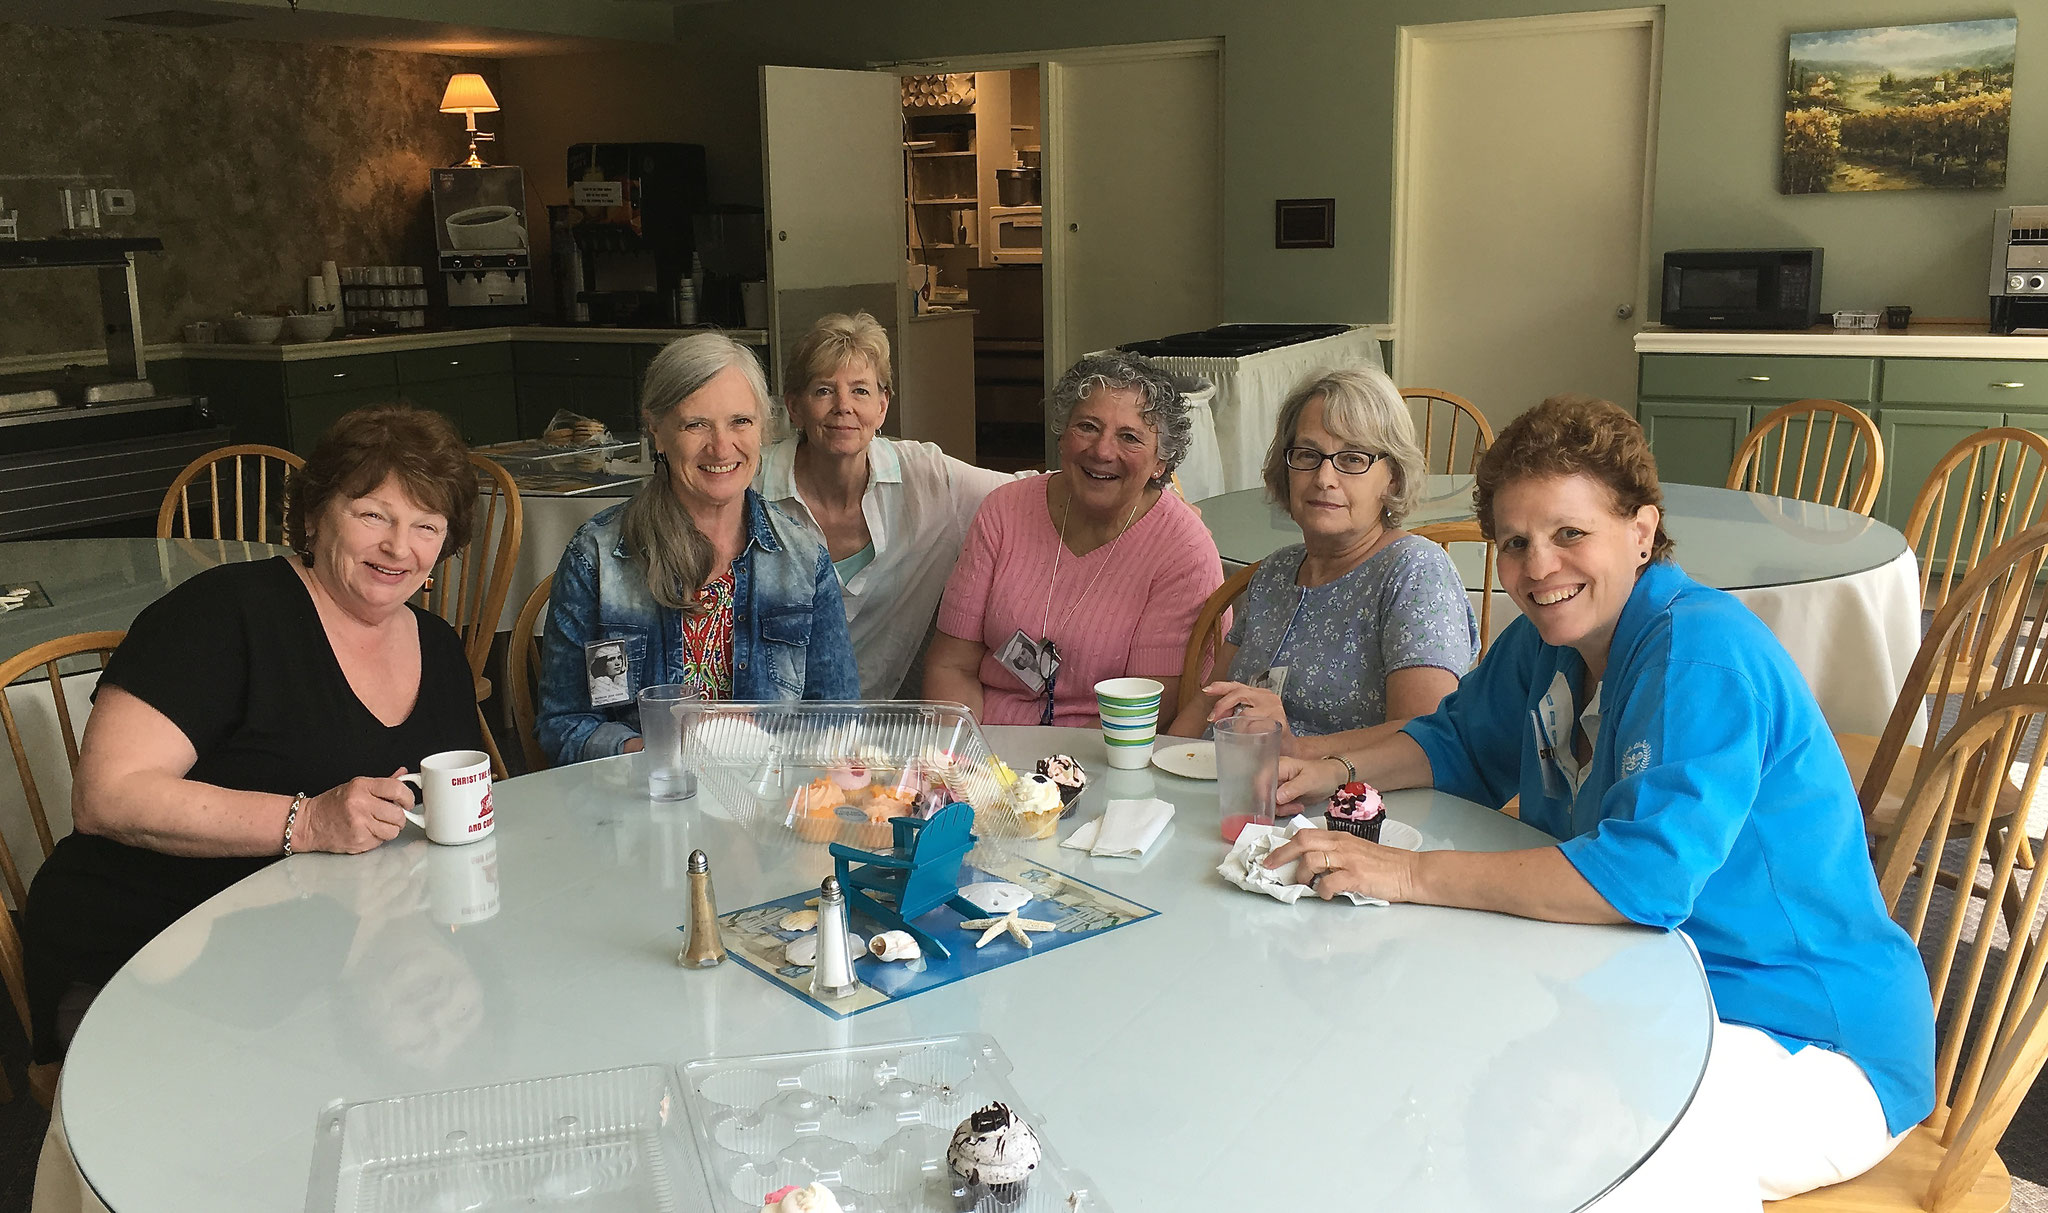 Theresa Jennings, Patty Coon, Marie Fletcher, Sue Lamanna, Barb Slater, Jo LaNasa